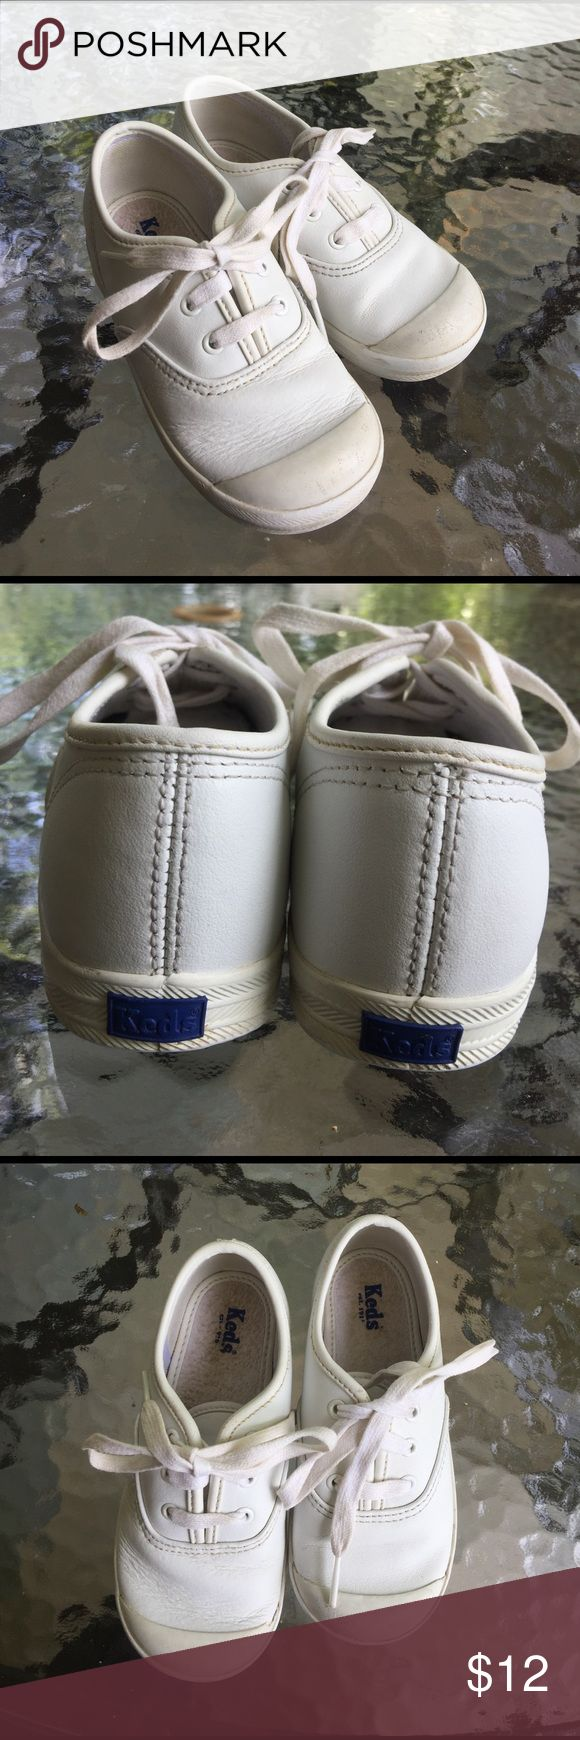 White Keds sneakers Good used condition white leather Keds with rubber toe. Keds Shoes Sneakers